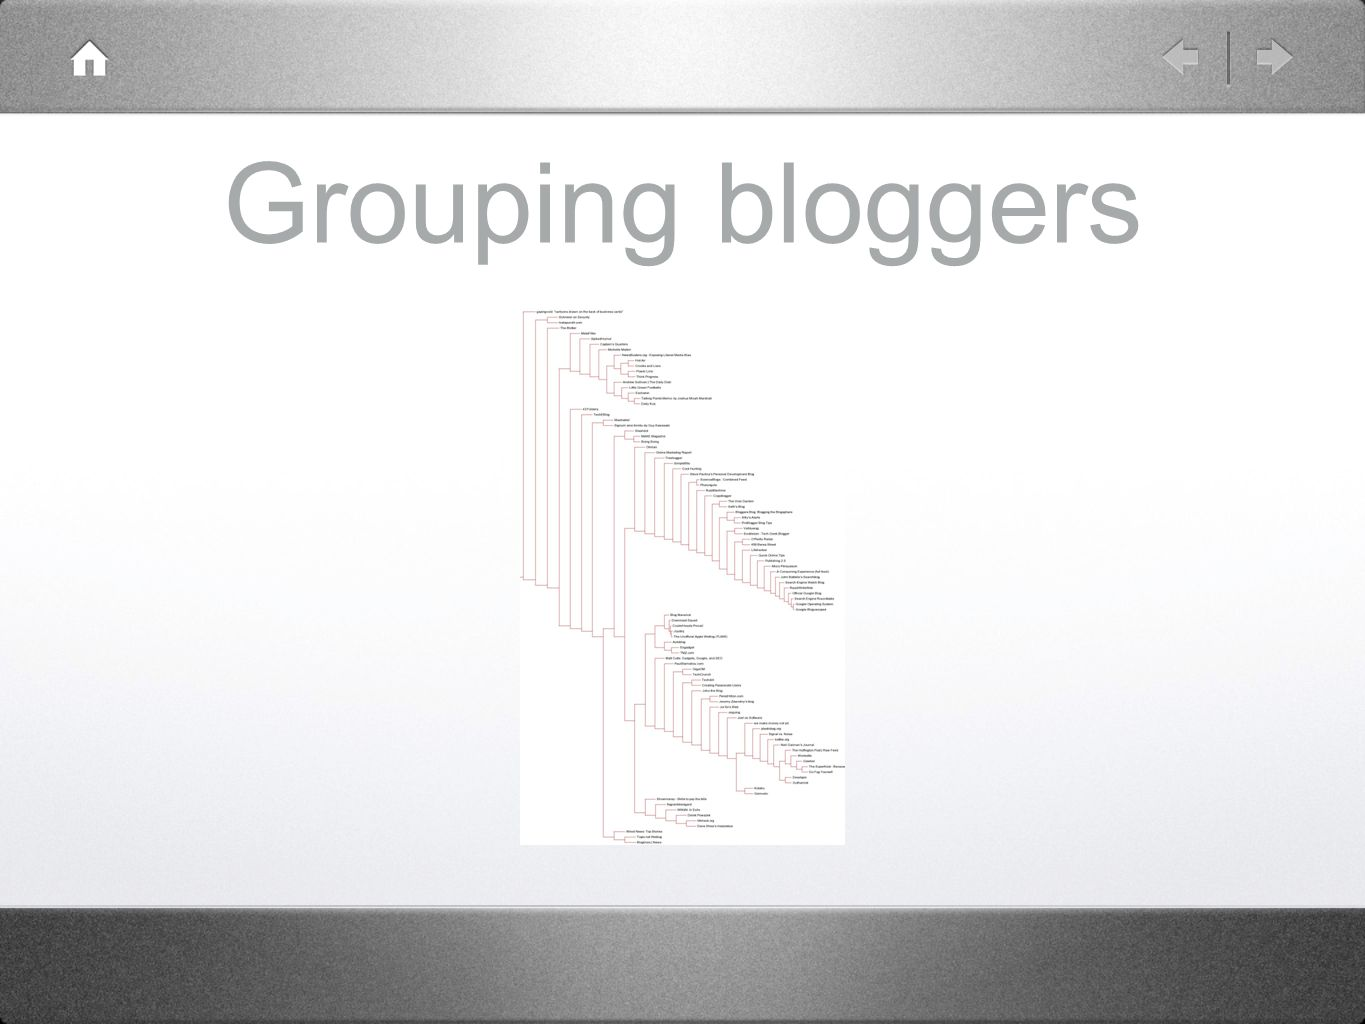 Grouping bloggers